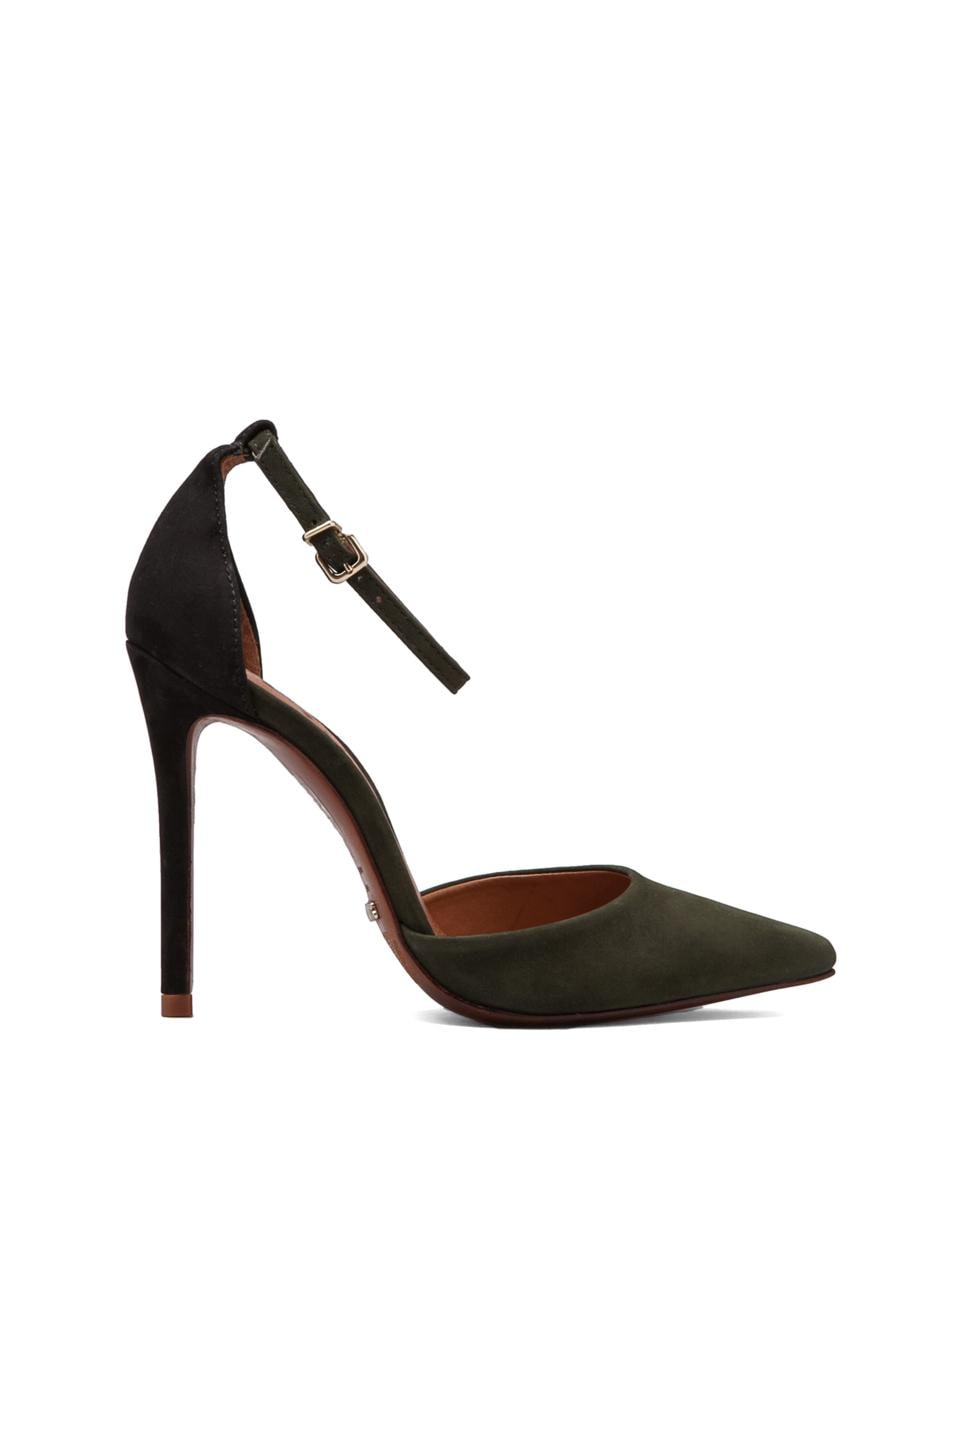 Schutz Irma Colorblock Pump in Black/Military Green